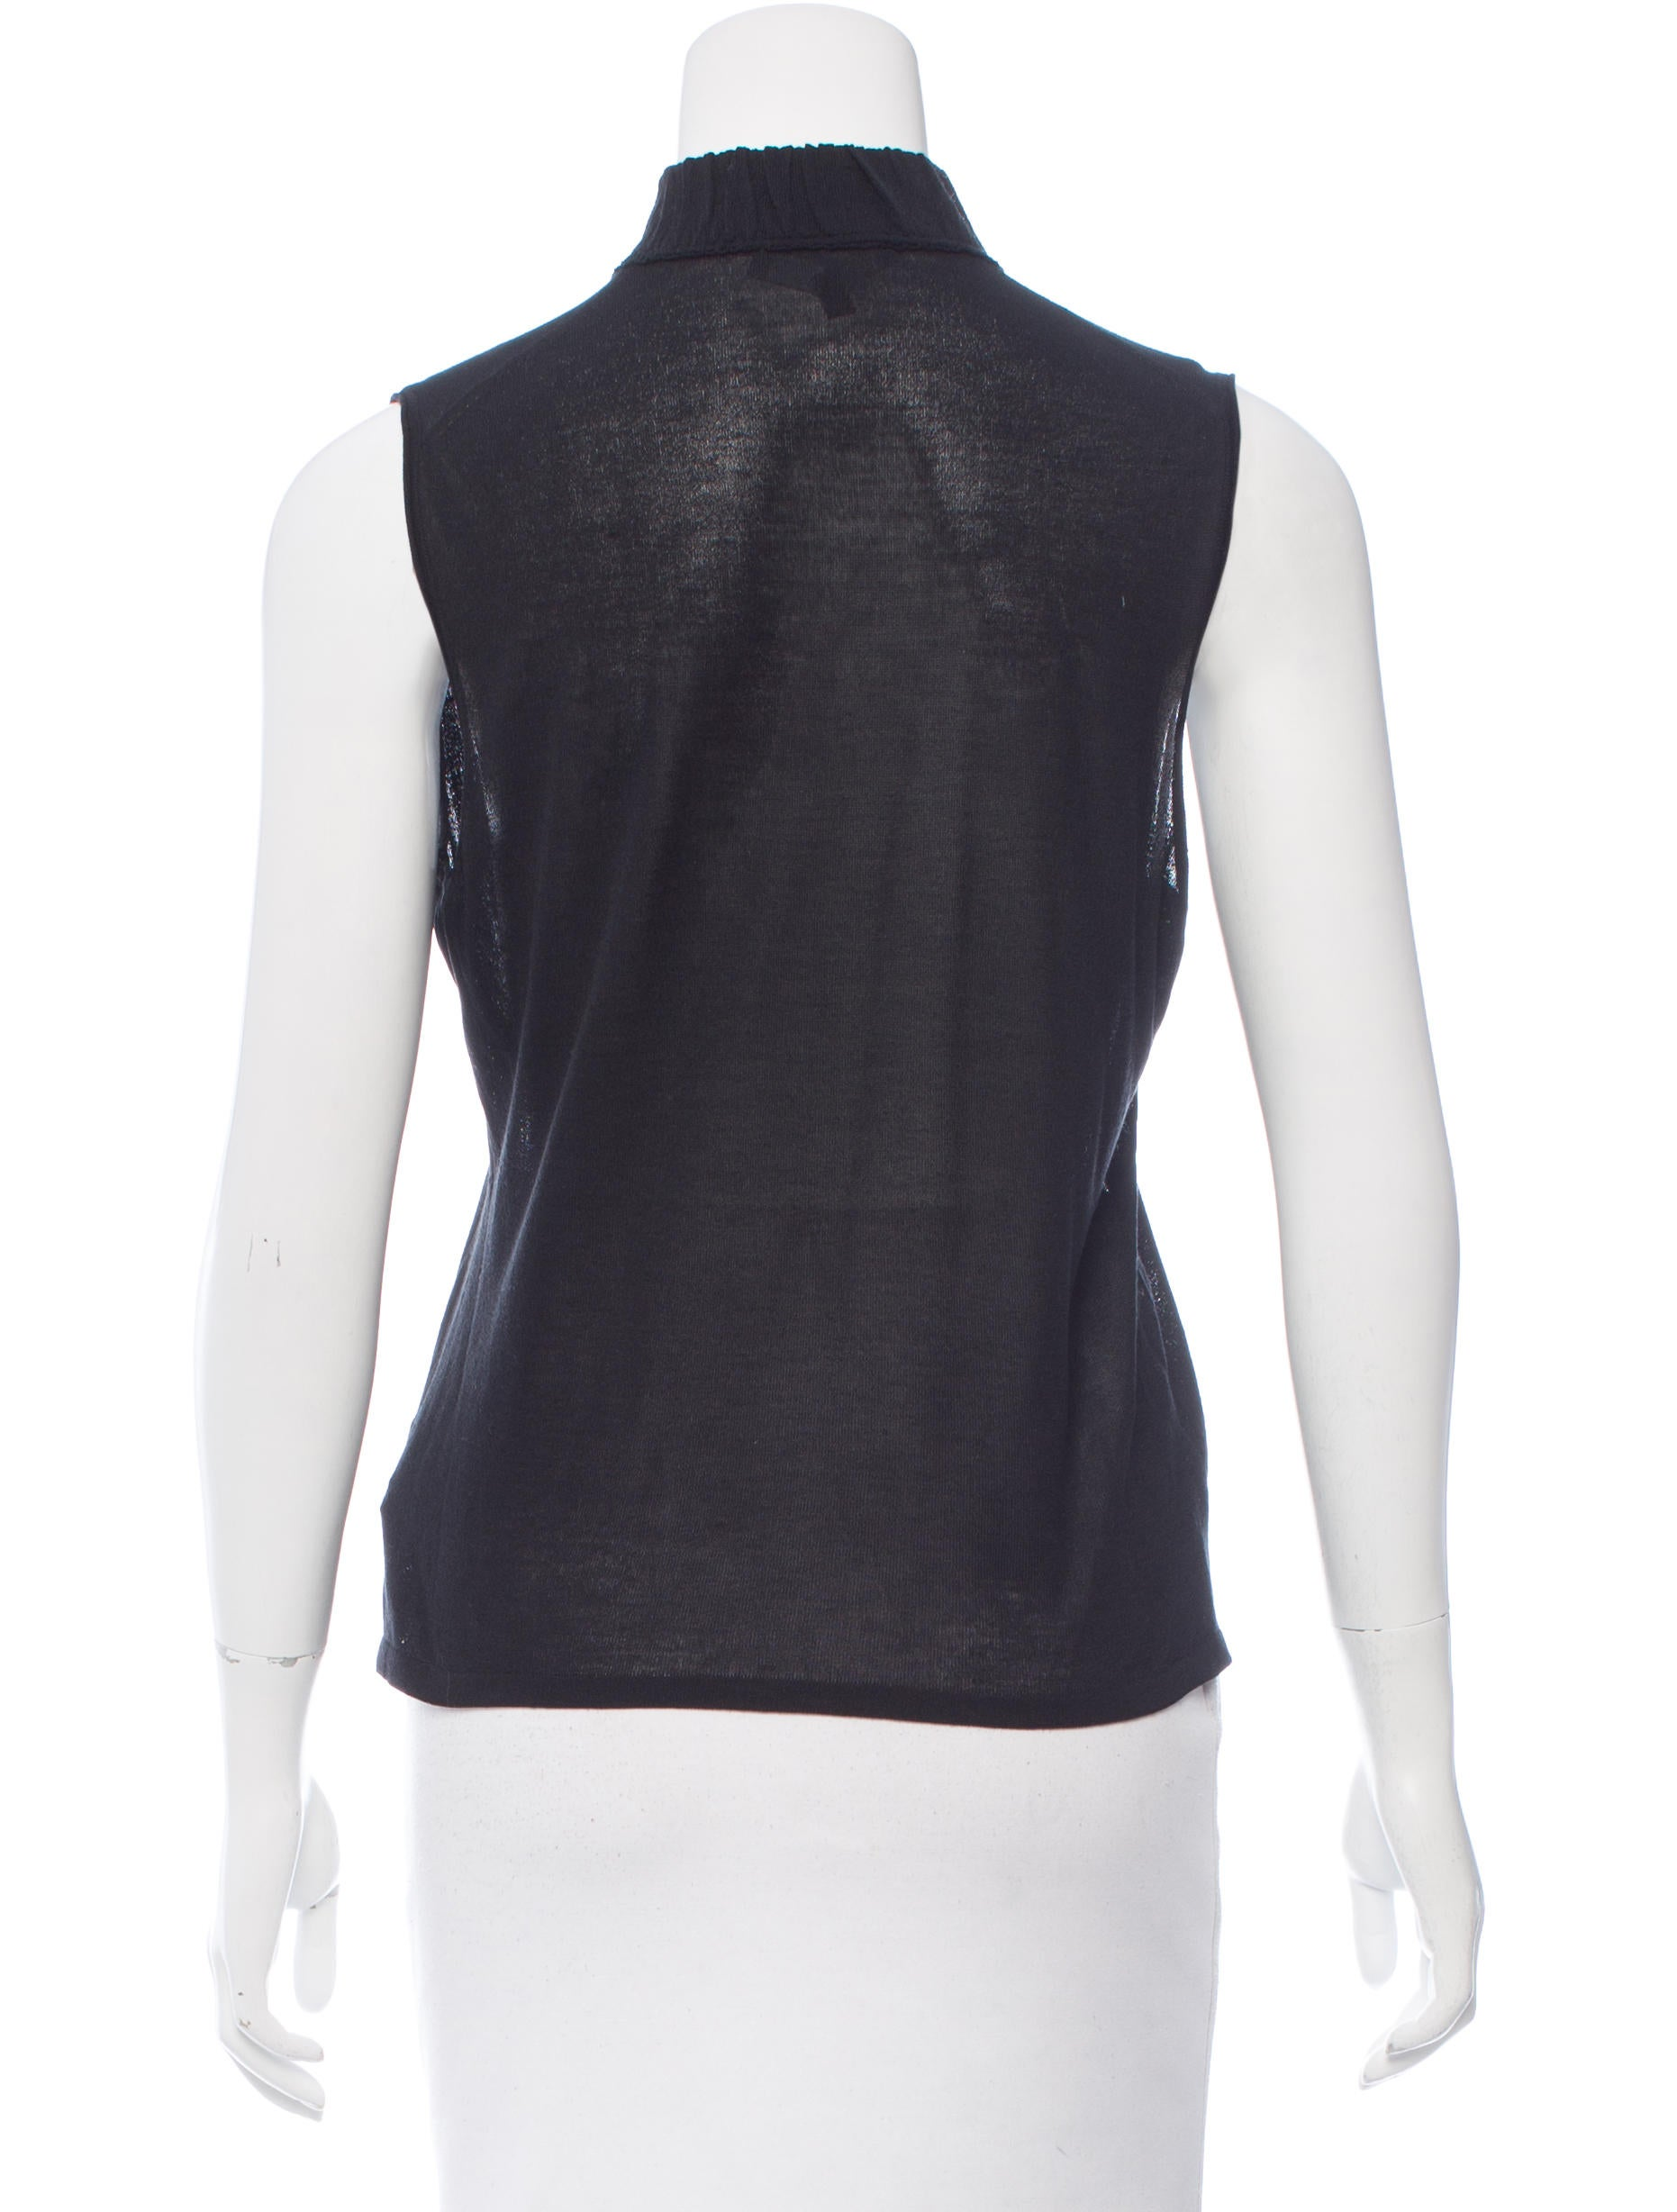 Gucci sleeveless mock neck top clothing guc151691 for Sleeveless mock turtleneck shirts